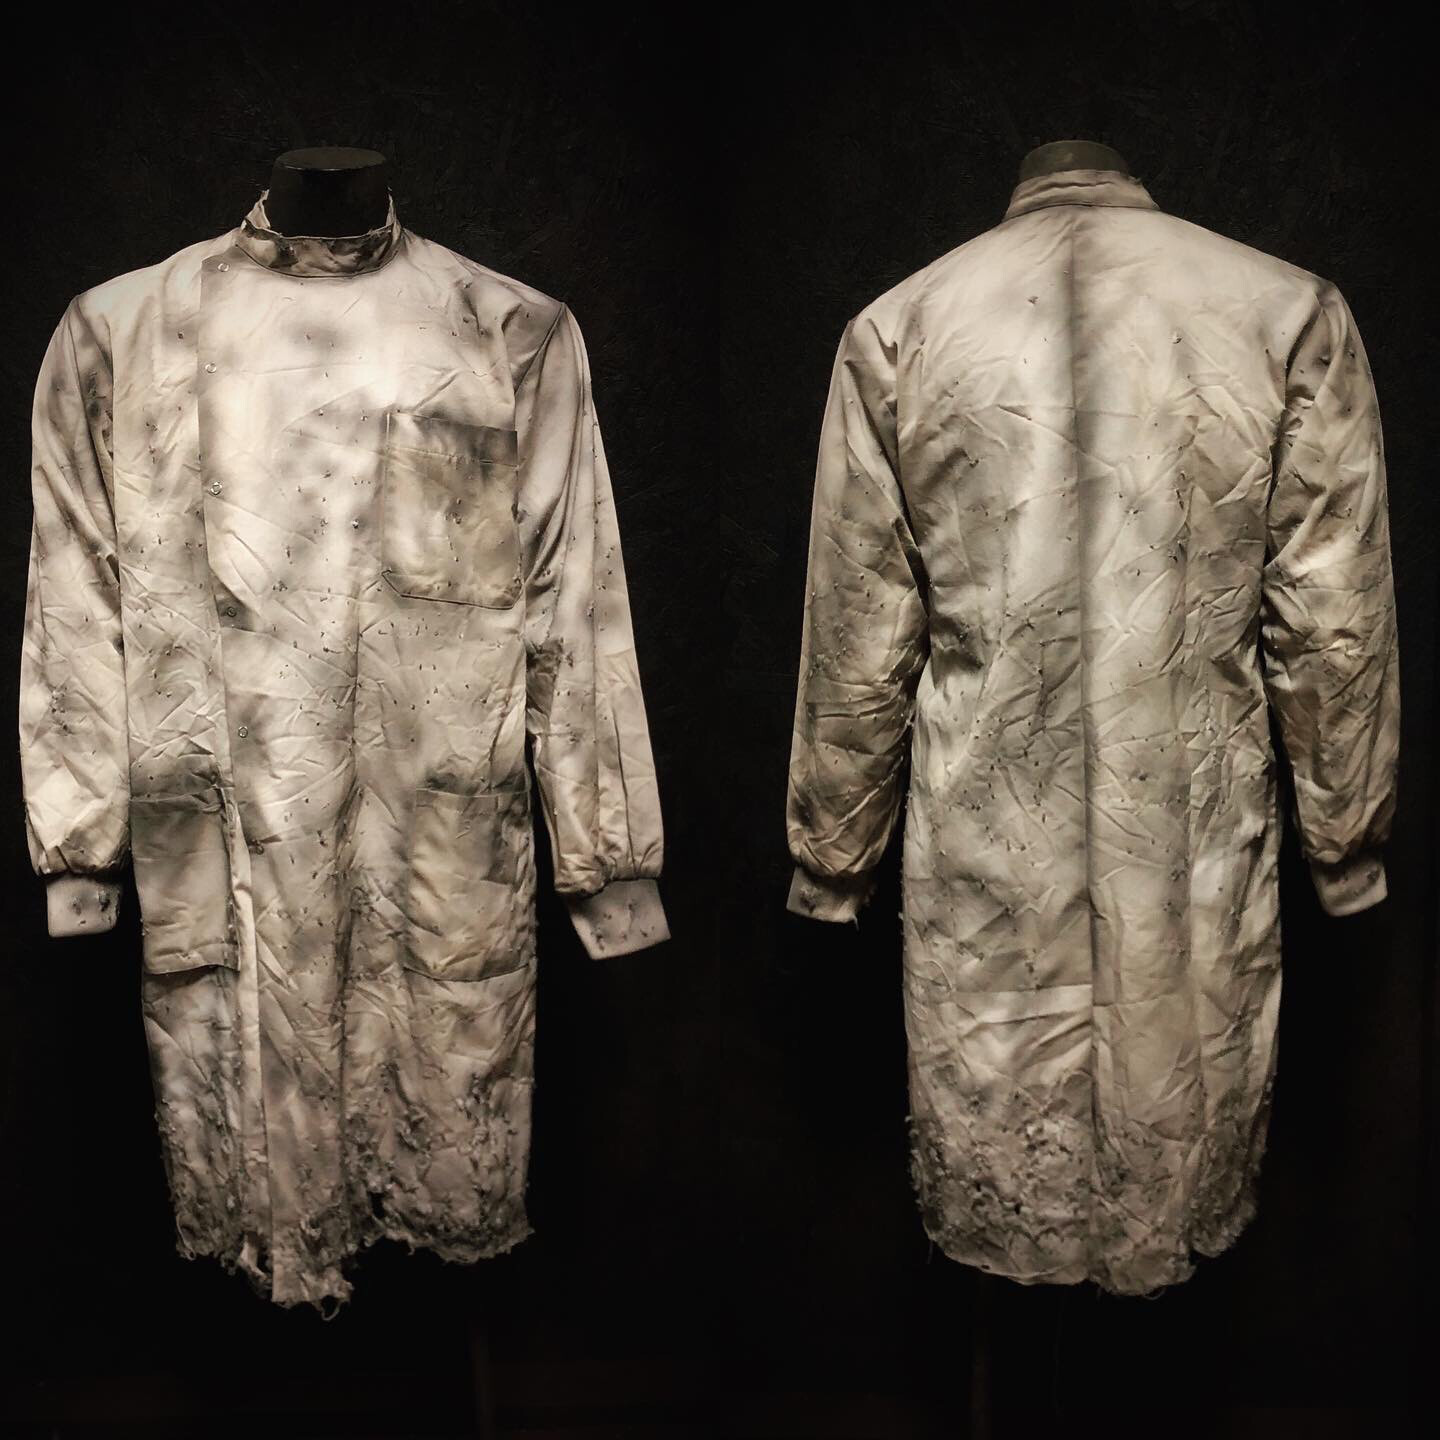 Surgical Coat